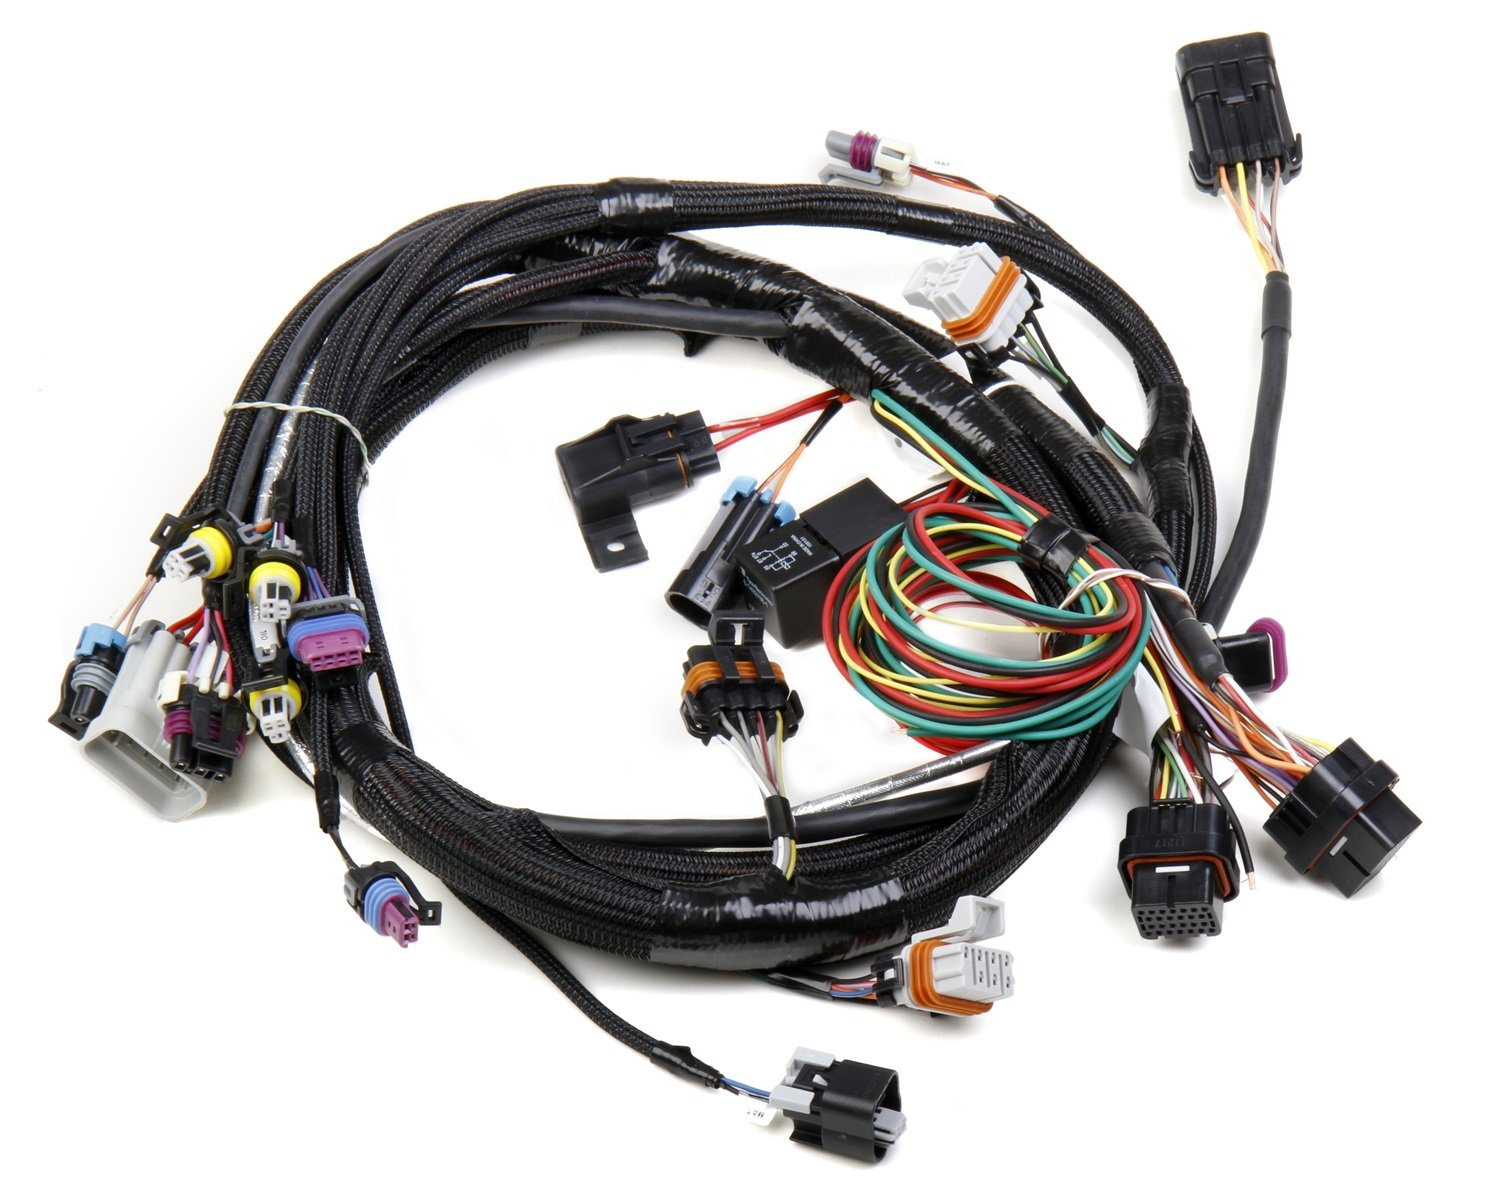 71R9M48Oc L._SL1500_ amazon com holley 558 102 ls1 main harness automotive 6.5 Diesel Wiring Harness at panicattacktreatment.co